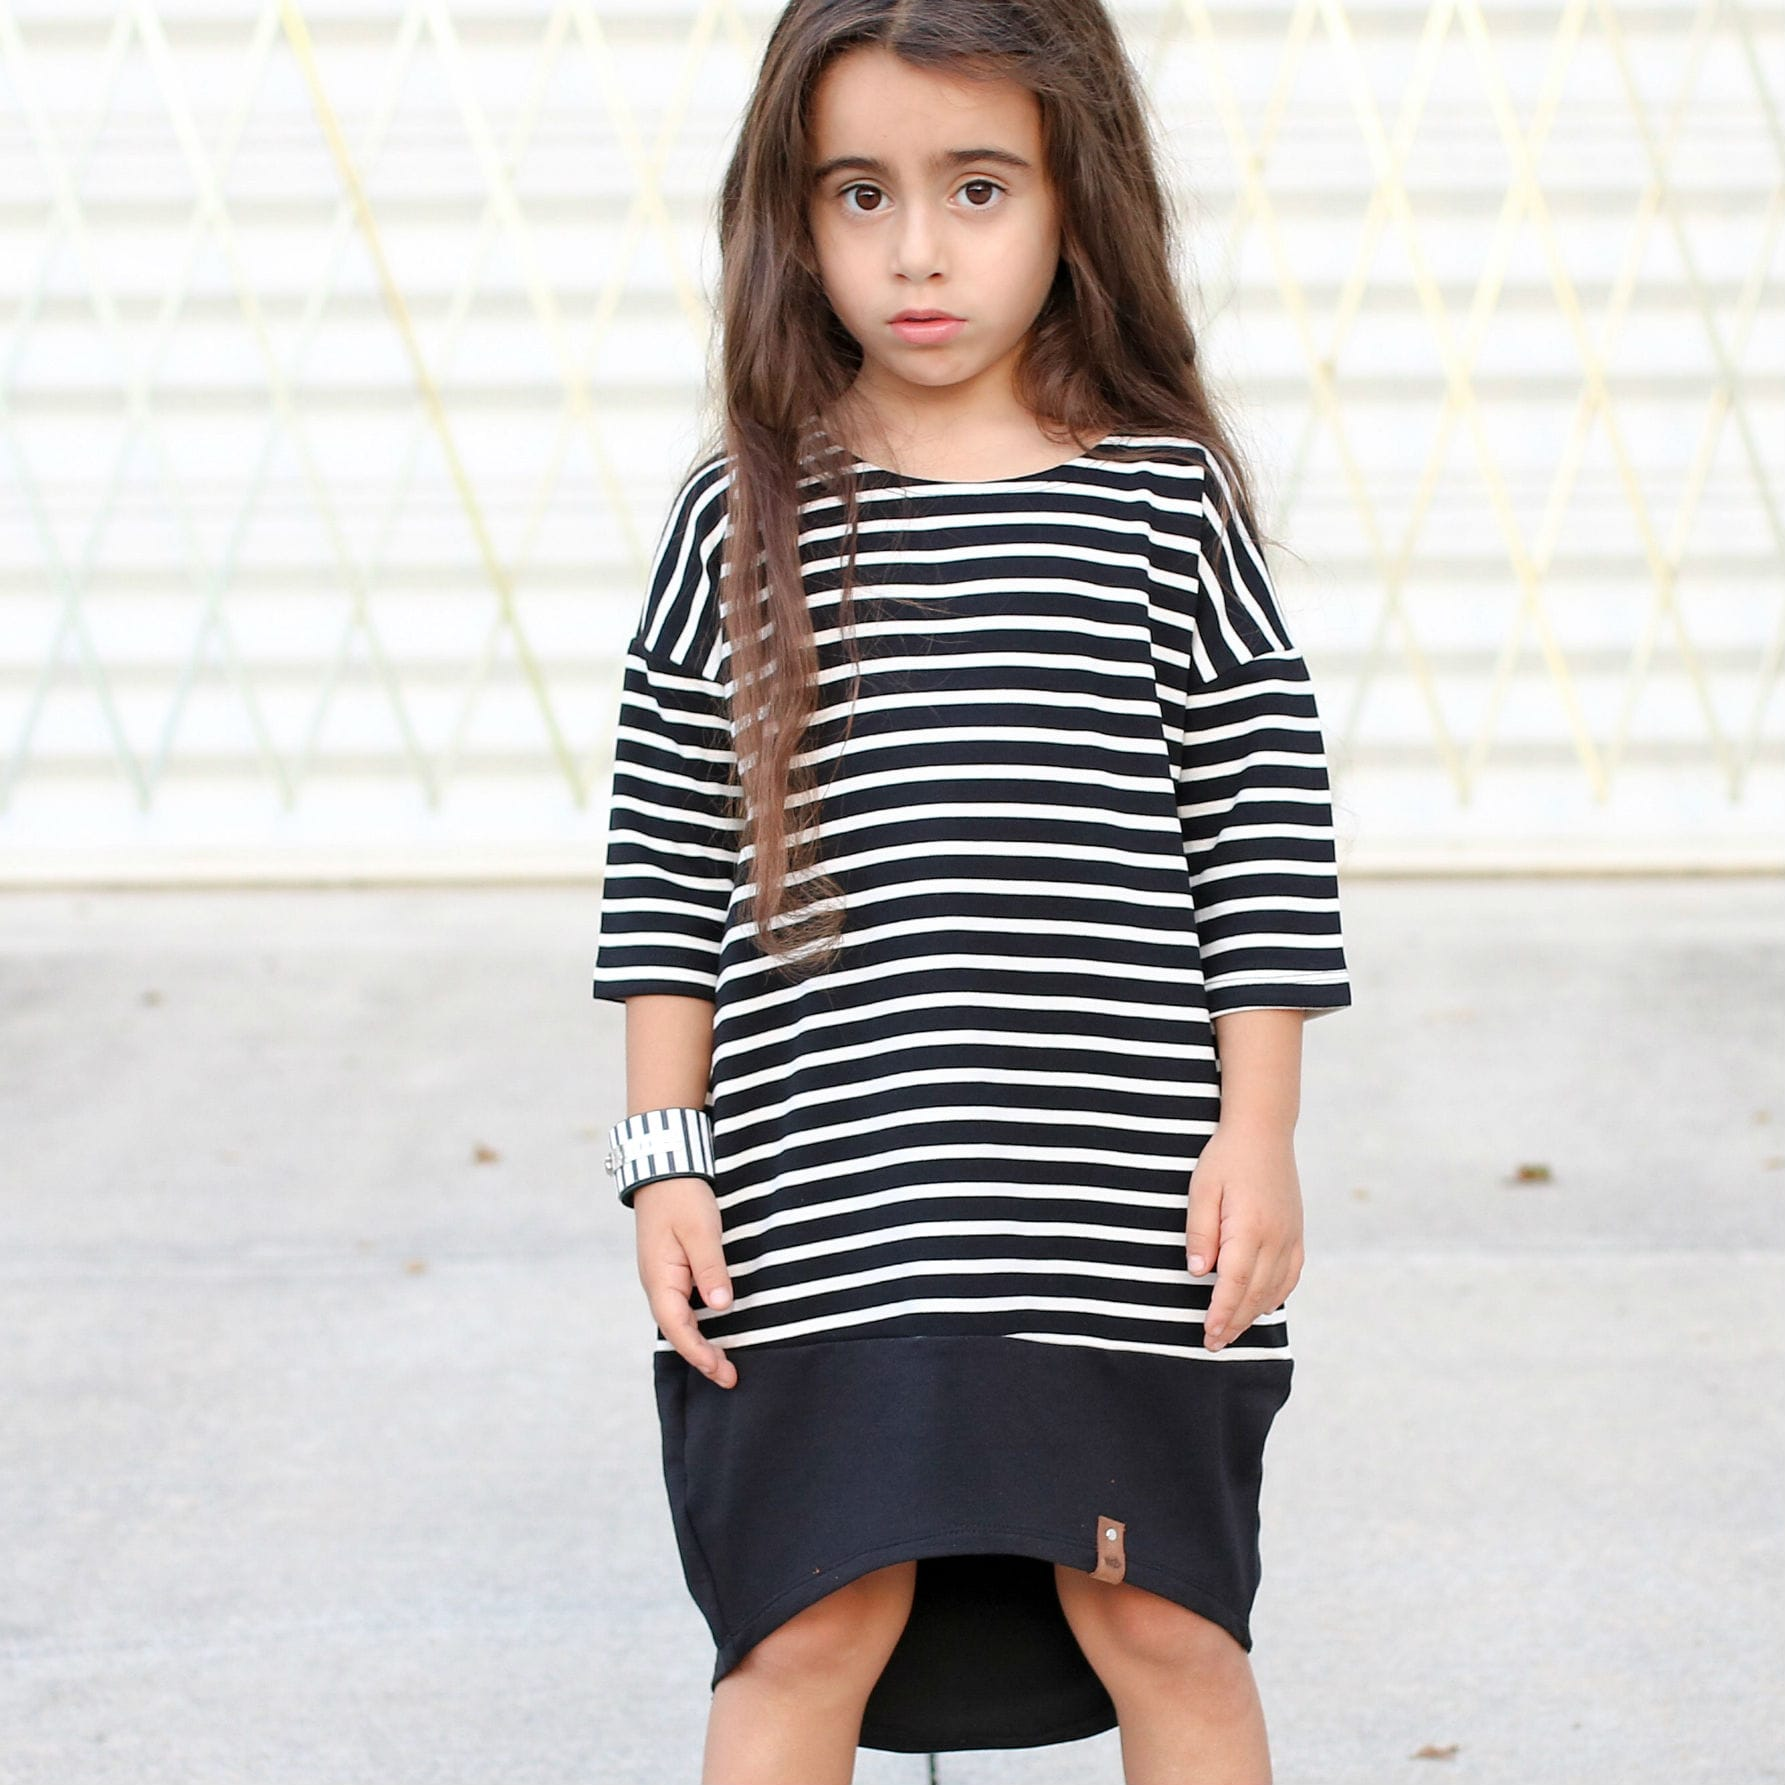 Trendy dressed girl in black and white striped dress by Mini Street